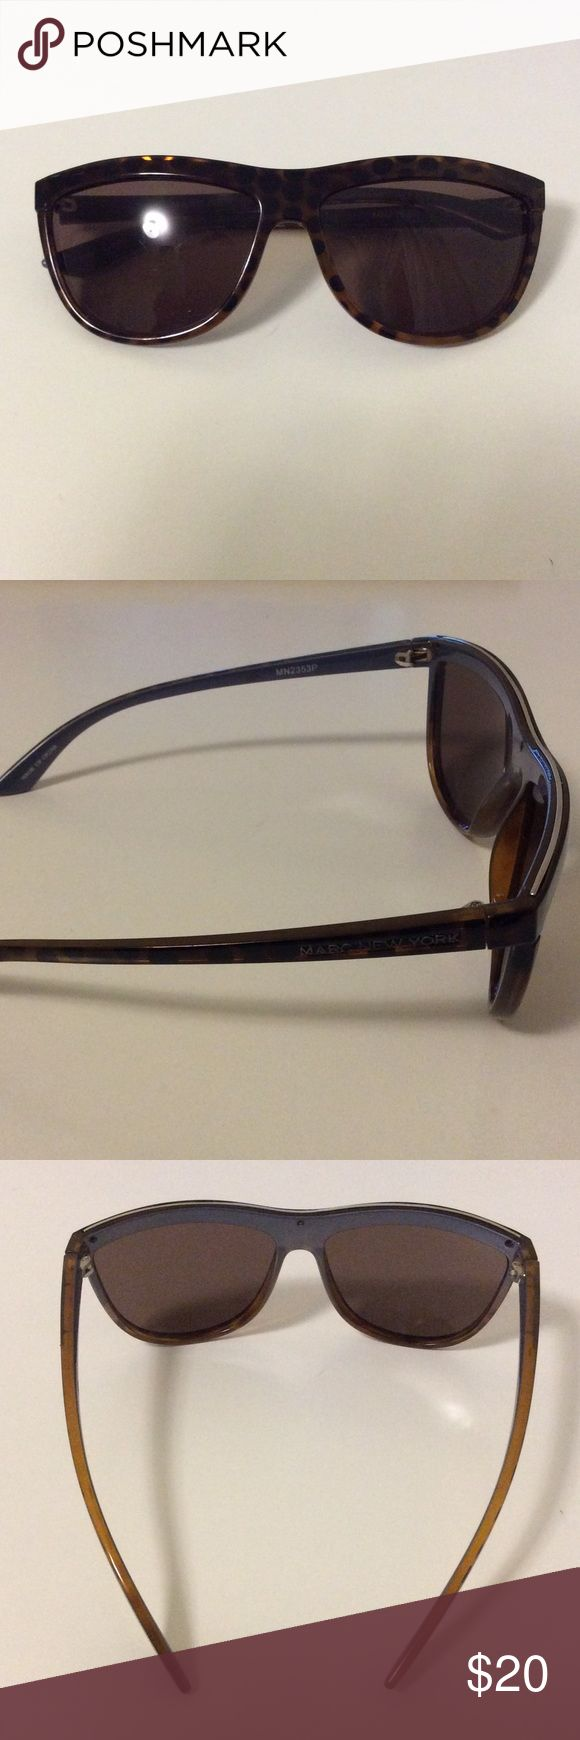 Marc New York tortoise sunglasses Marc New York by Andrew Marc sunglasses. MN2353P. Silver stripe at the top (photo 2). Used but in great condition. No scratches or flaws. No case. Marc New York Accessories Sunglasses